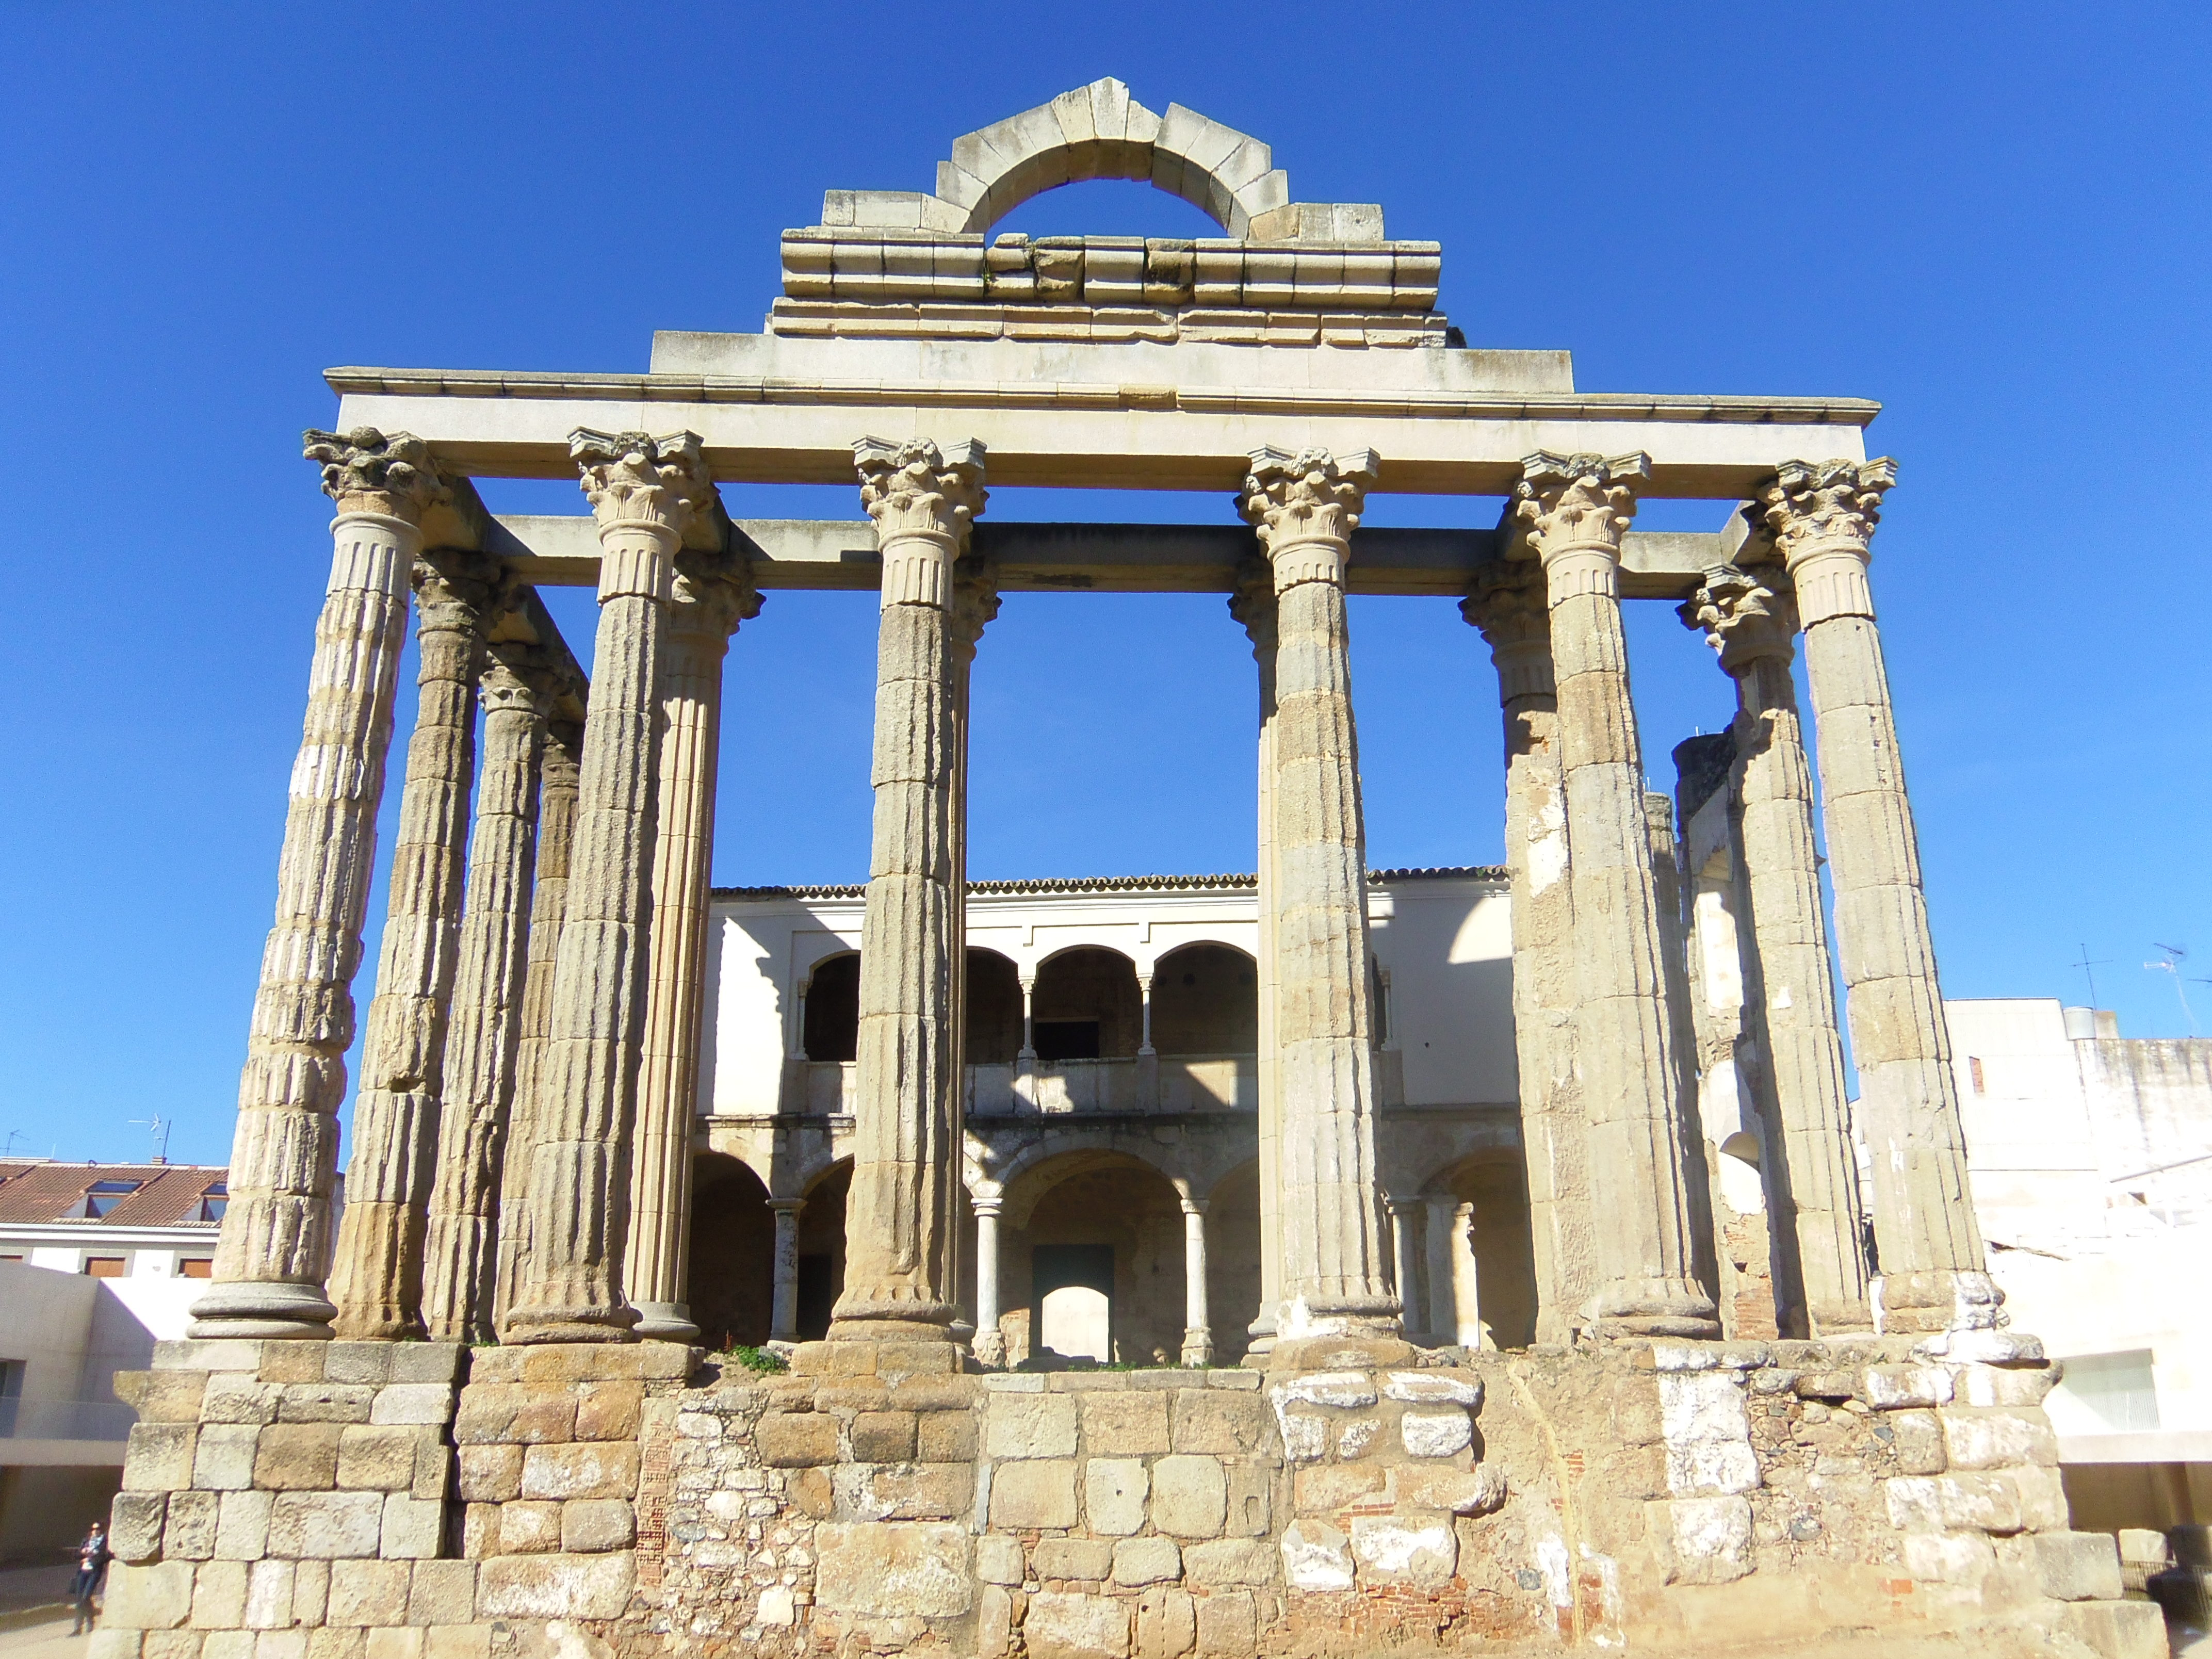 File:Temple of Diana 2011.JPG - Wikimedia Commons